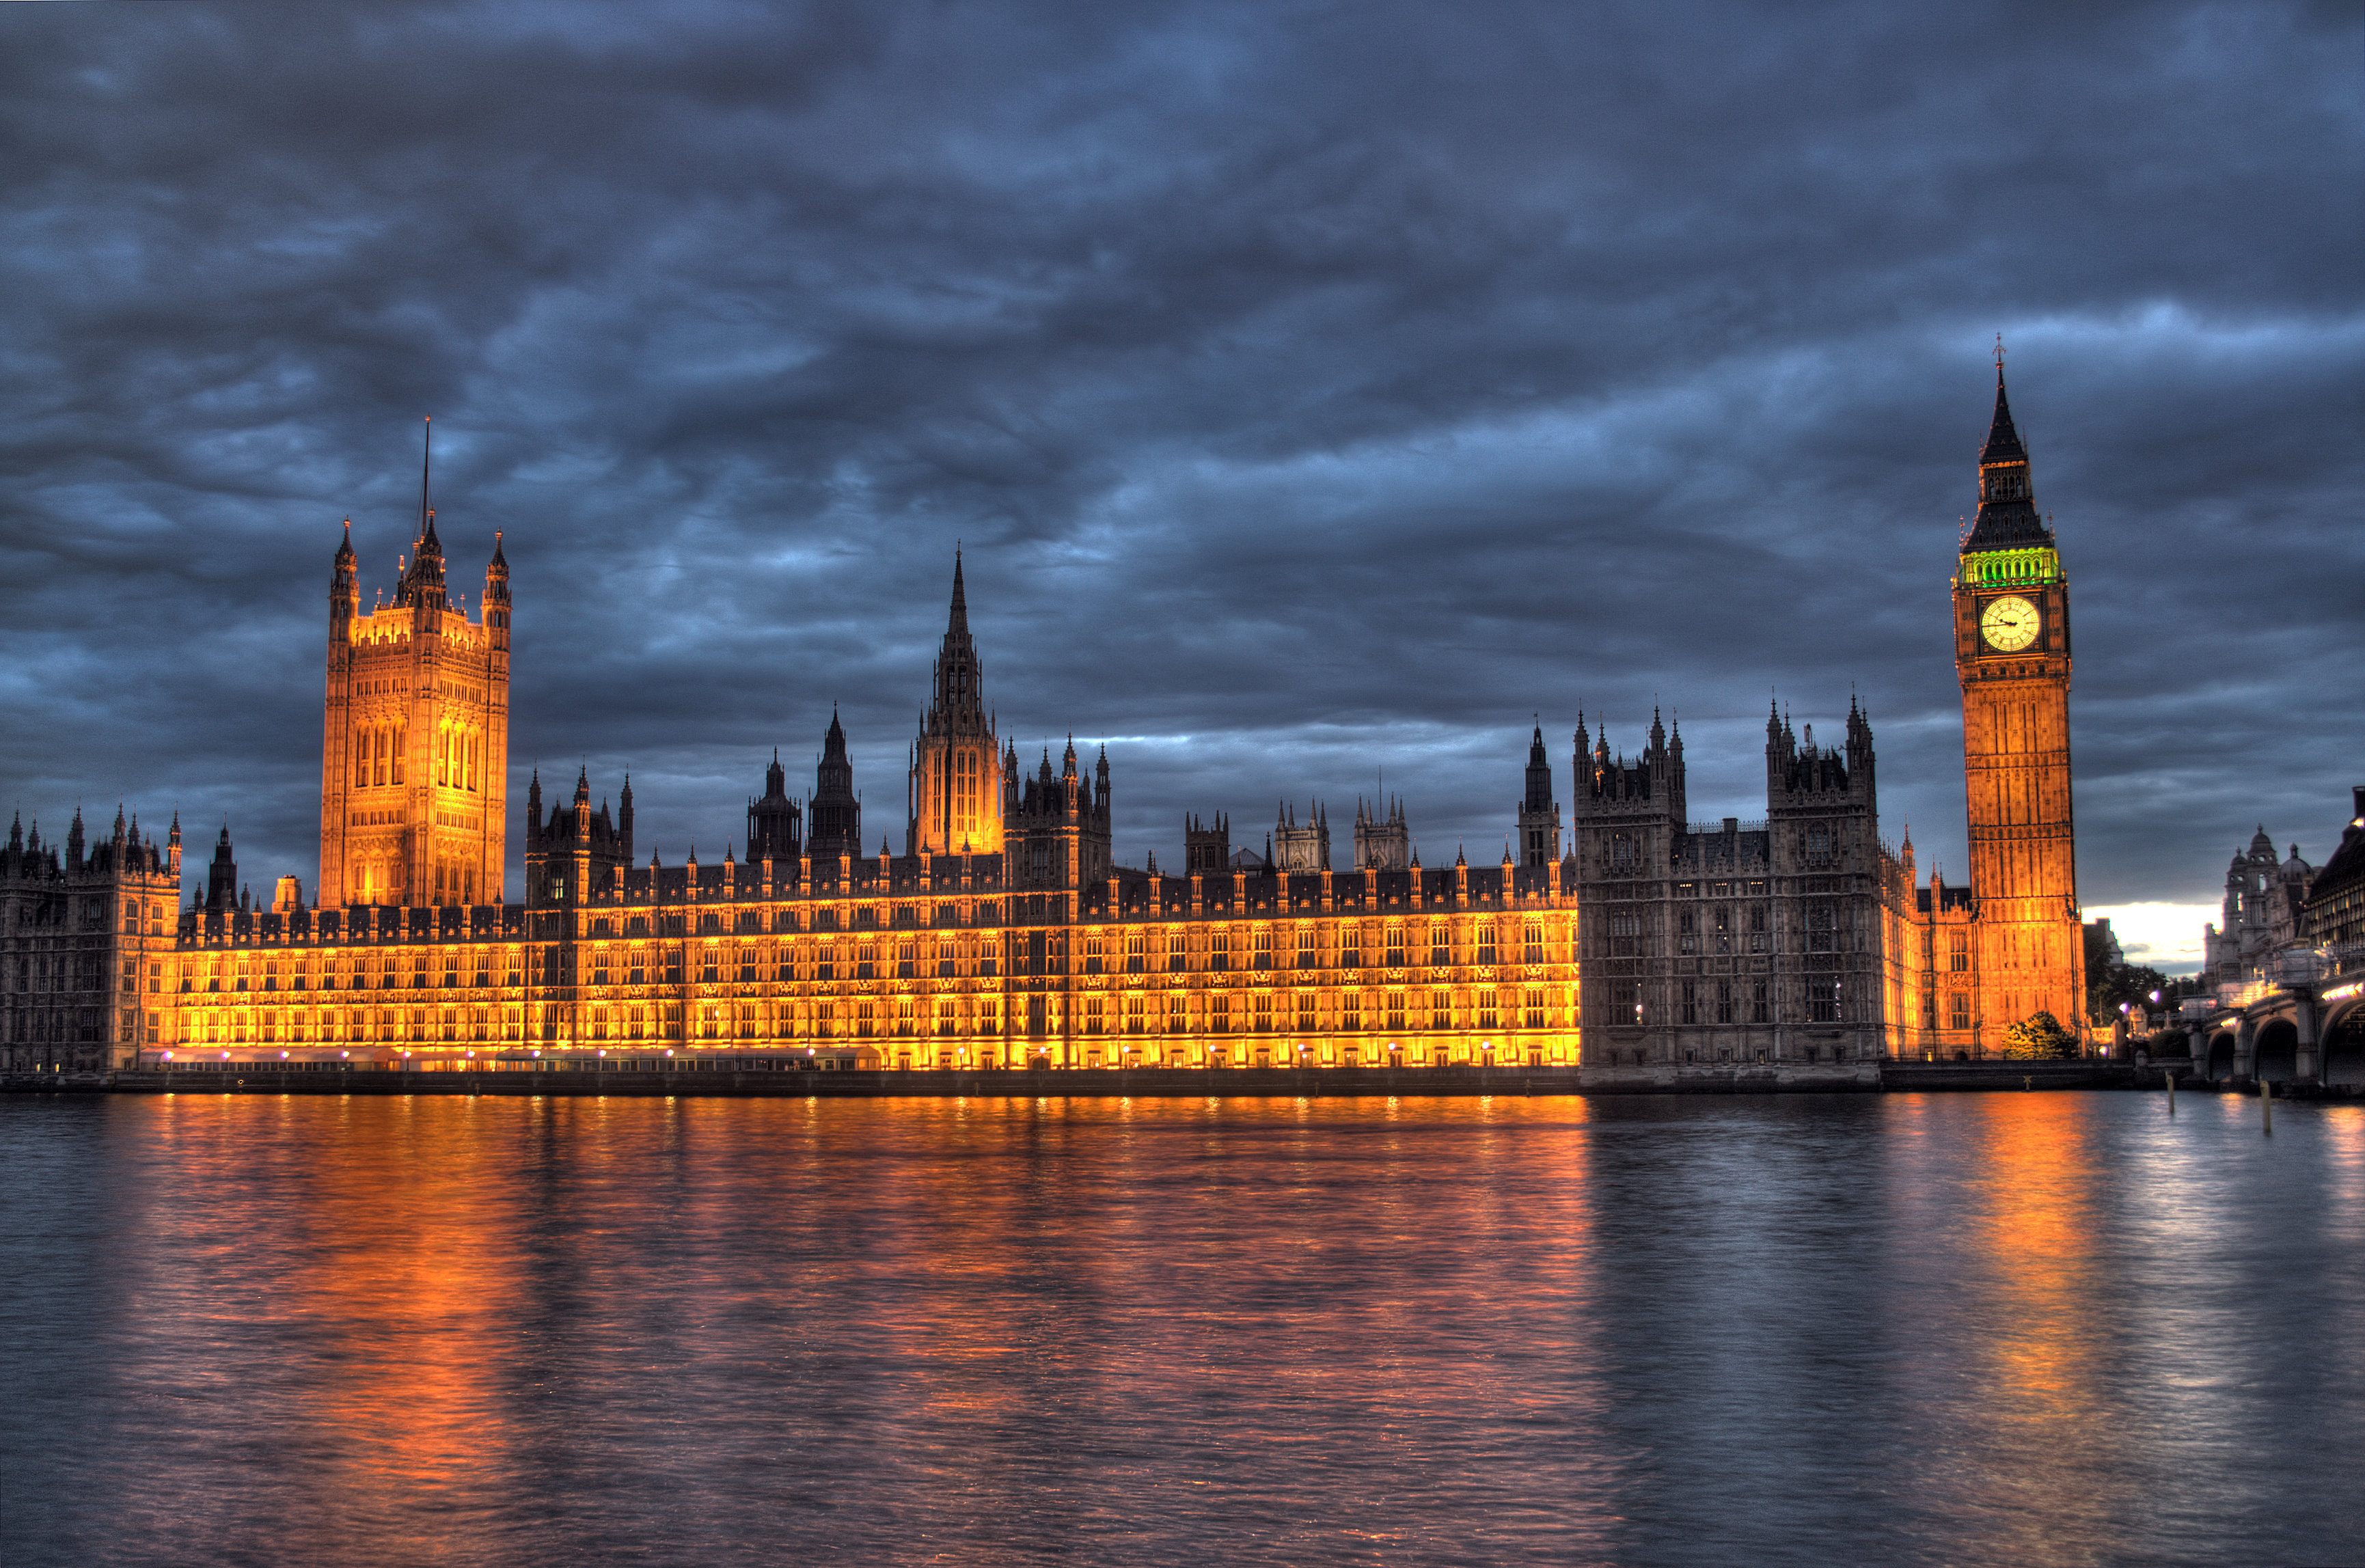 Westminster Palace, aka Houses of Parliament, and Big Ben, at night. (Maurice via Flickr)